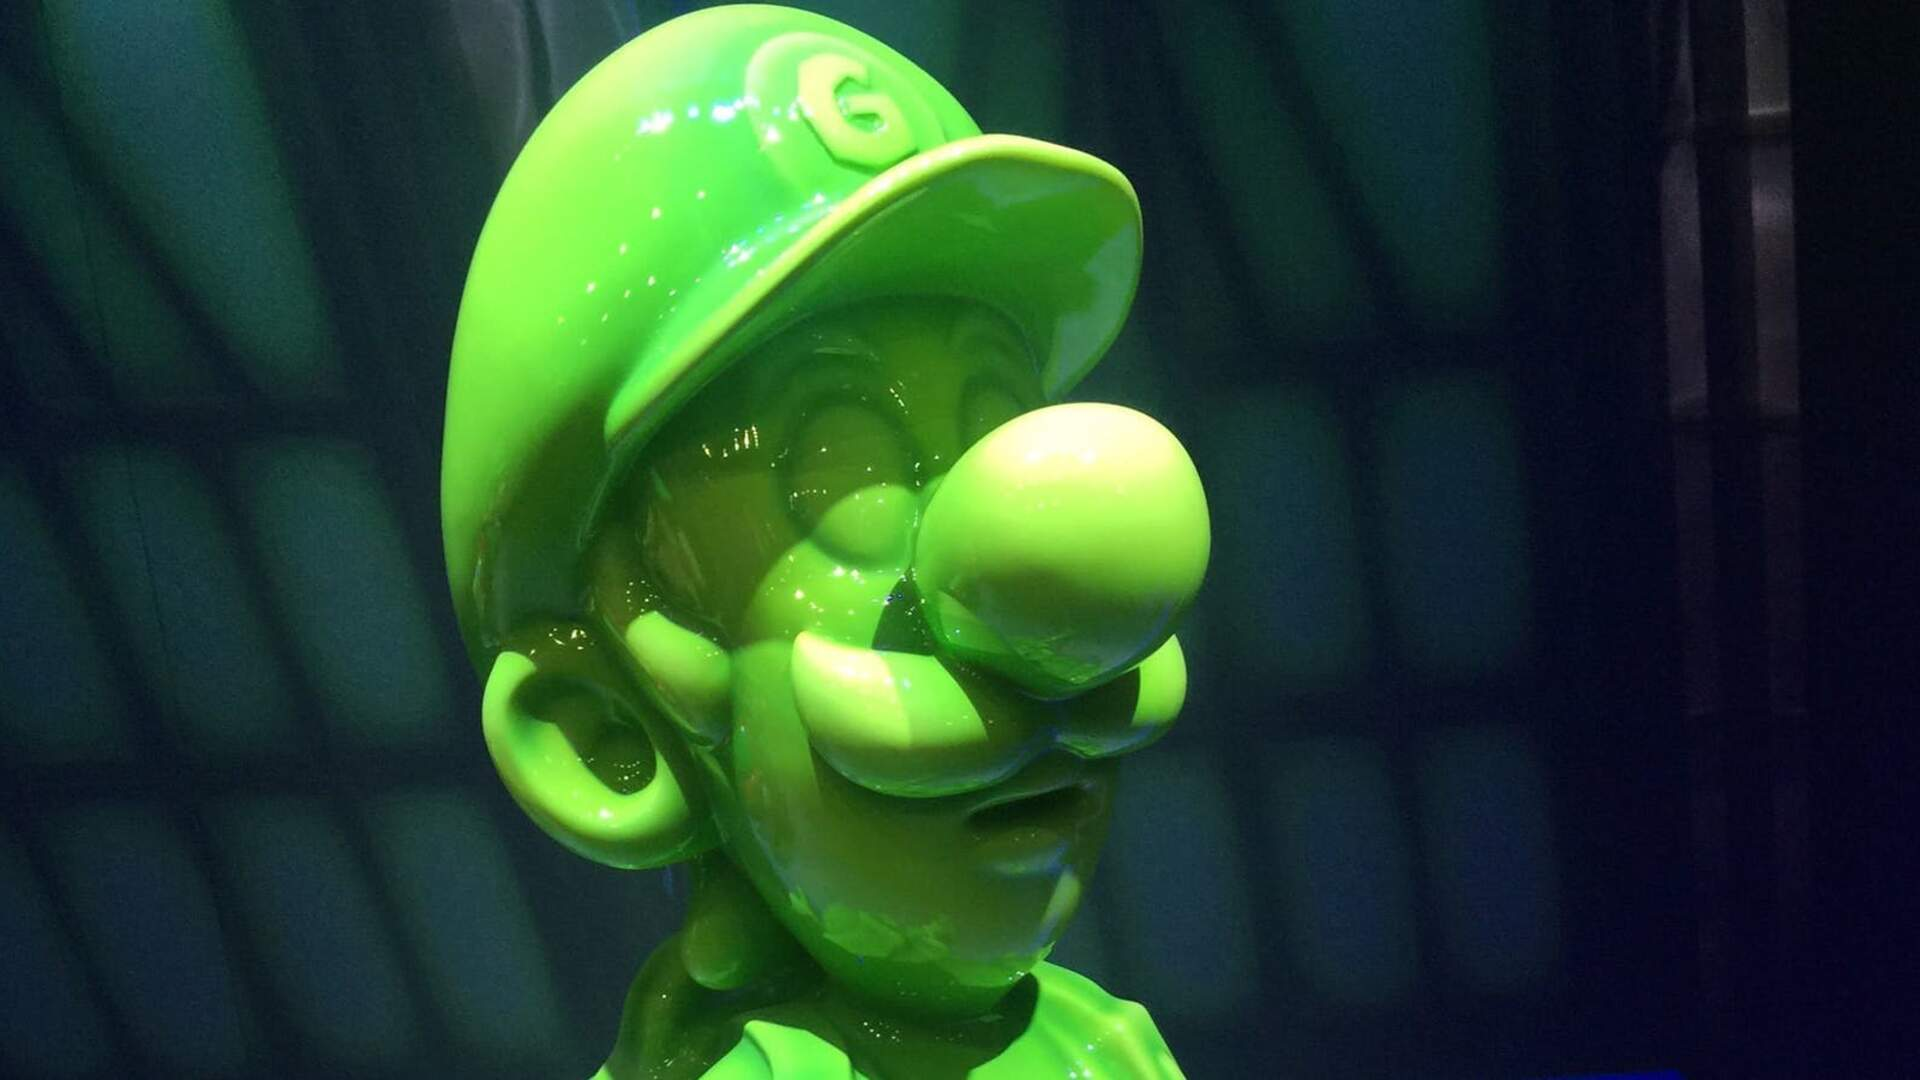 Gooigi Adds a Gooey New Dimension to Luigi's Mansion 3's Puzzles